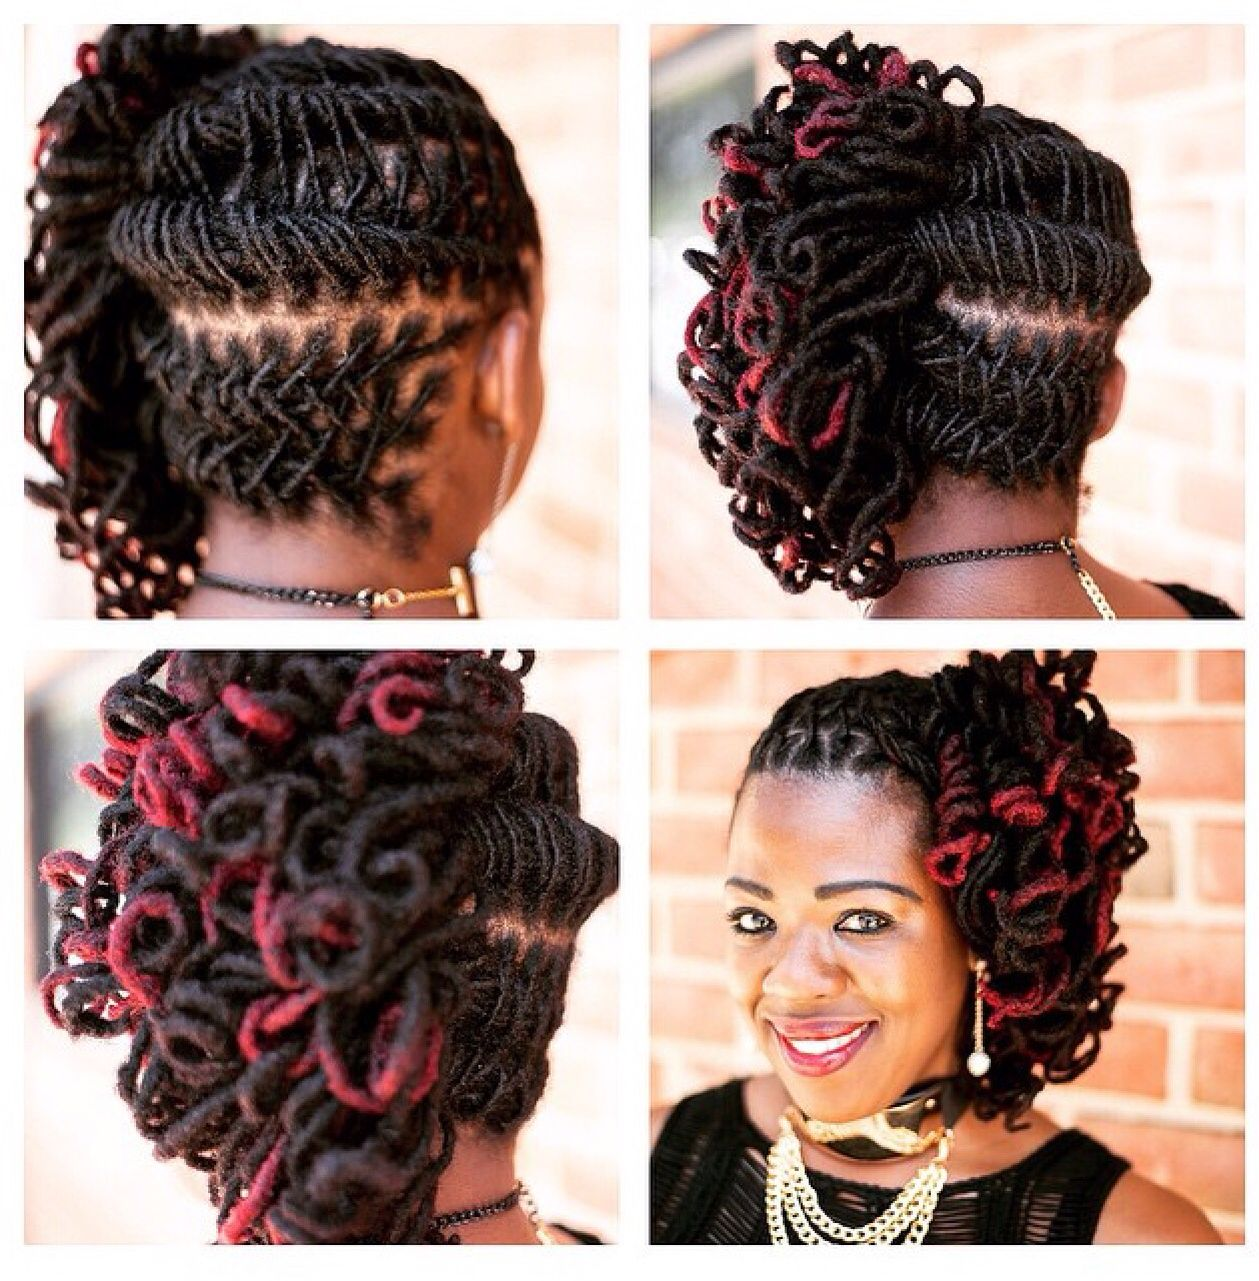 Coiffure Africaine Locks Love This Hair Style Too Caribbean Locks And Sisterlocks